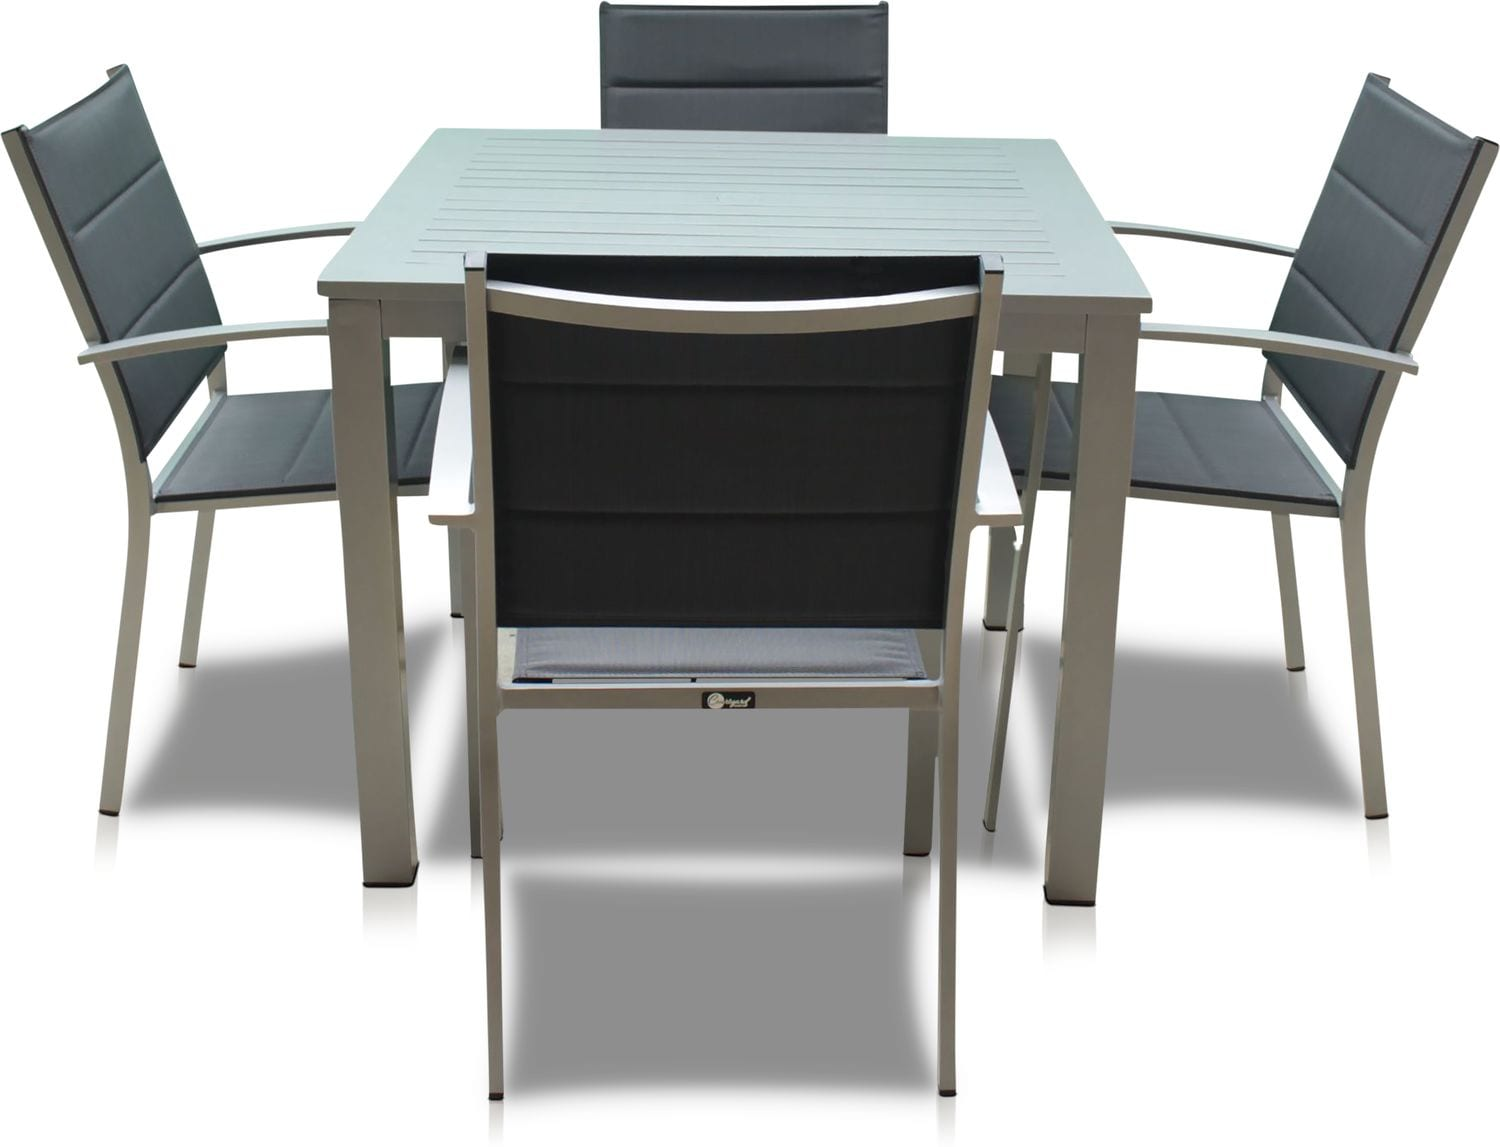 Outdoor Furniture - Edgewater Outdoor Square Dining Table and 4 Chairs